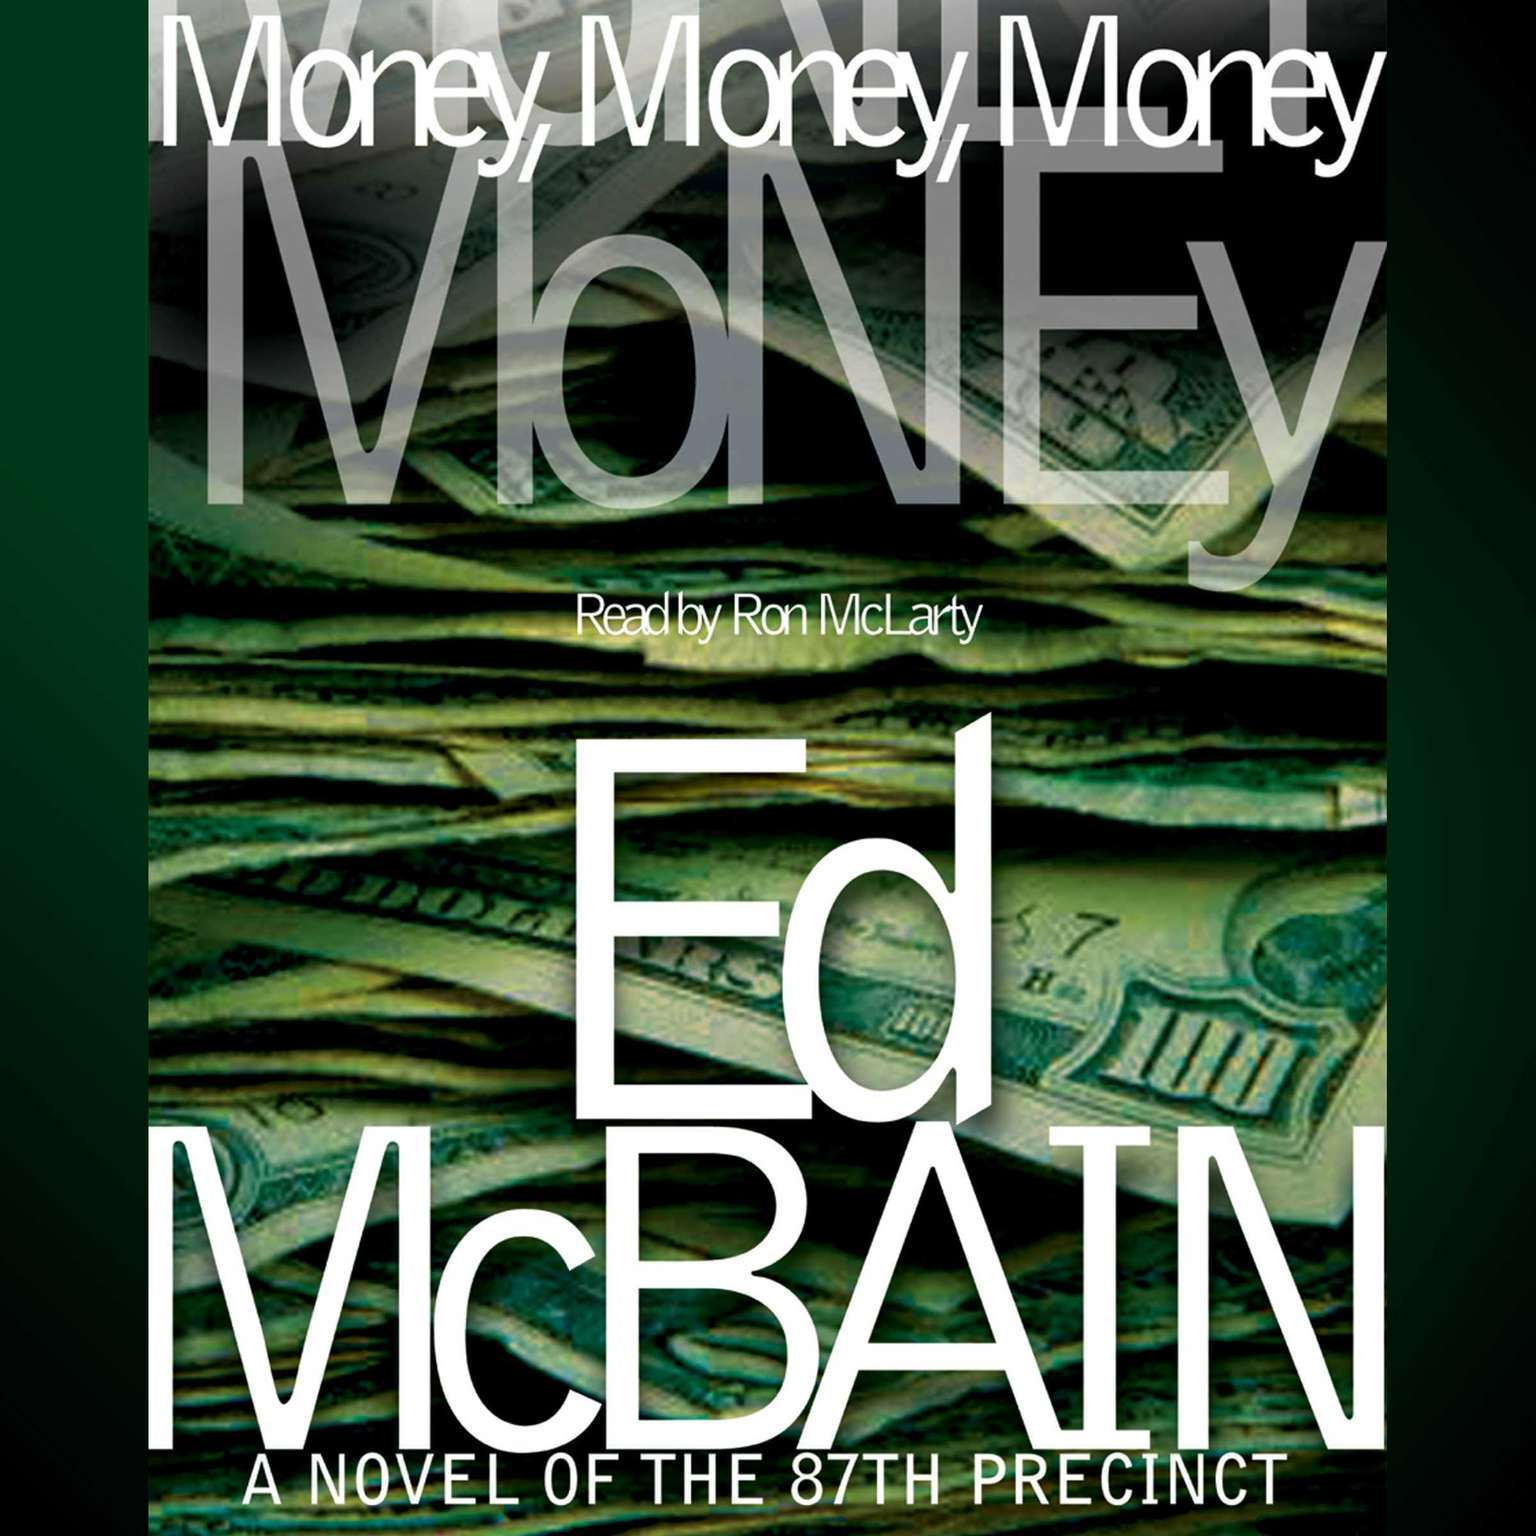 Printable Money, Money, Money: A Novel of the 87th Precinct Audiobook Cover Art